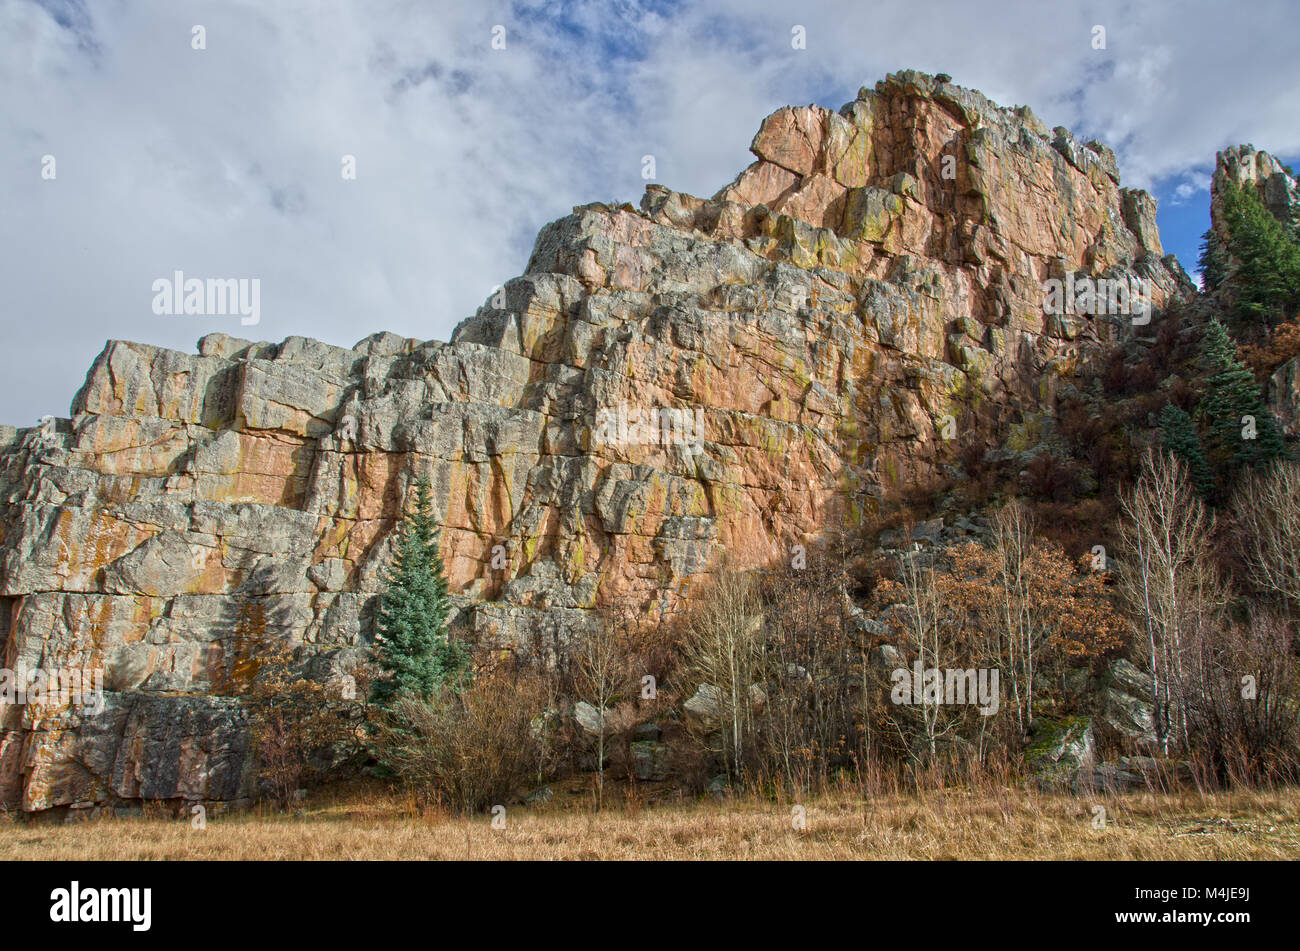 The stone wall in Stonewall, Colorado looks to be granite, but it is actually sandstone. - Stock Image